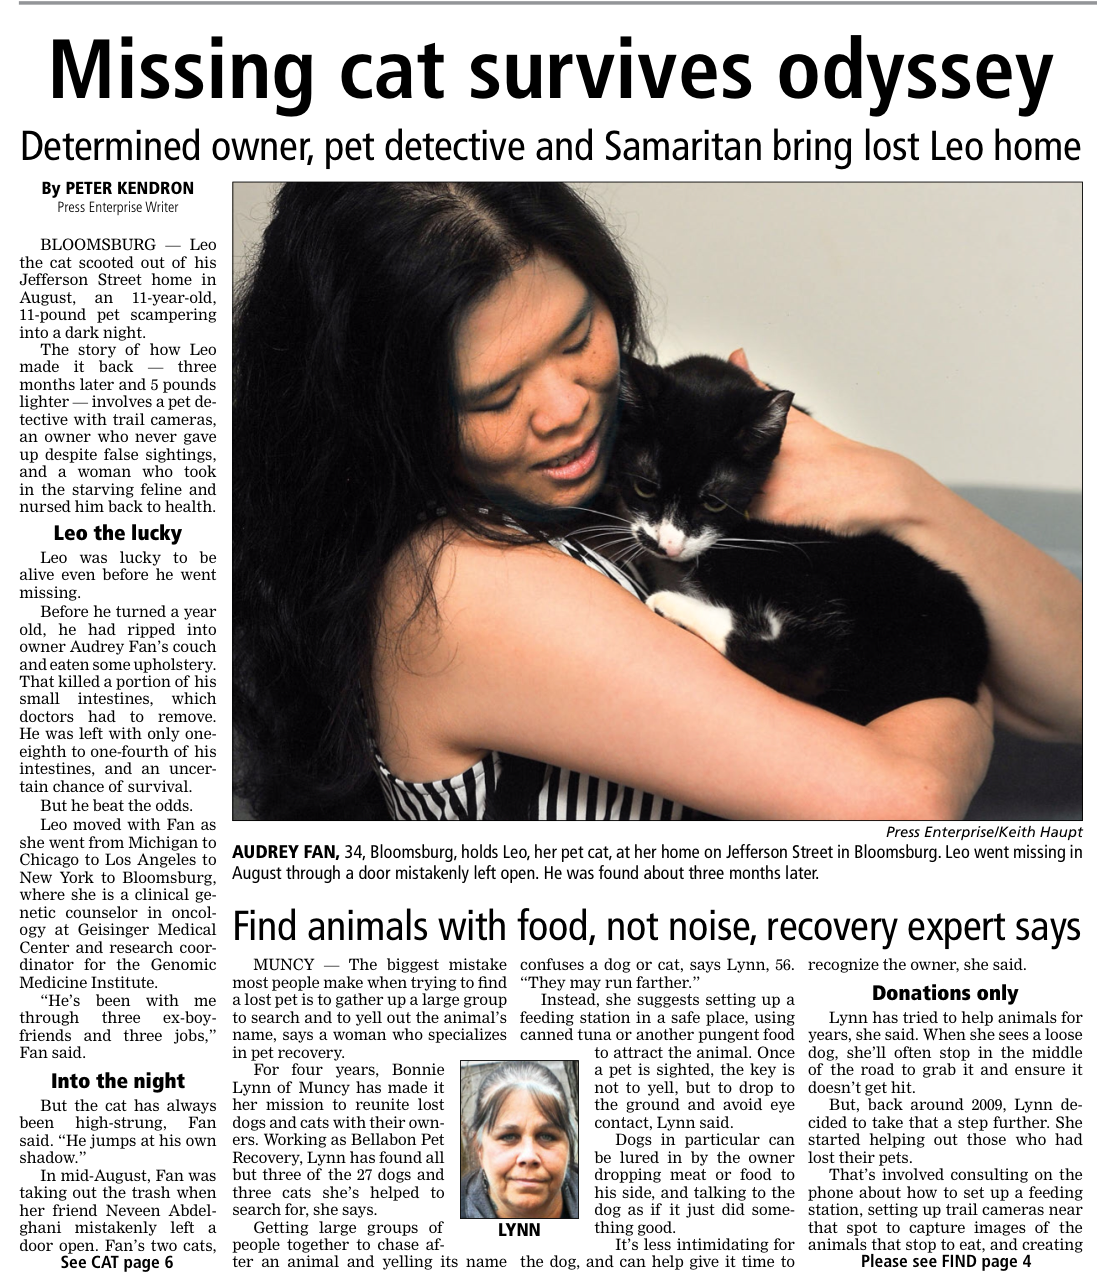 Missing Cat Survives Odessey